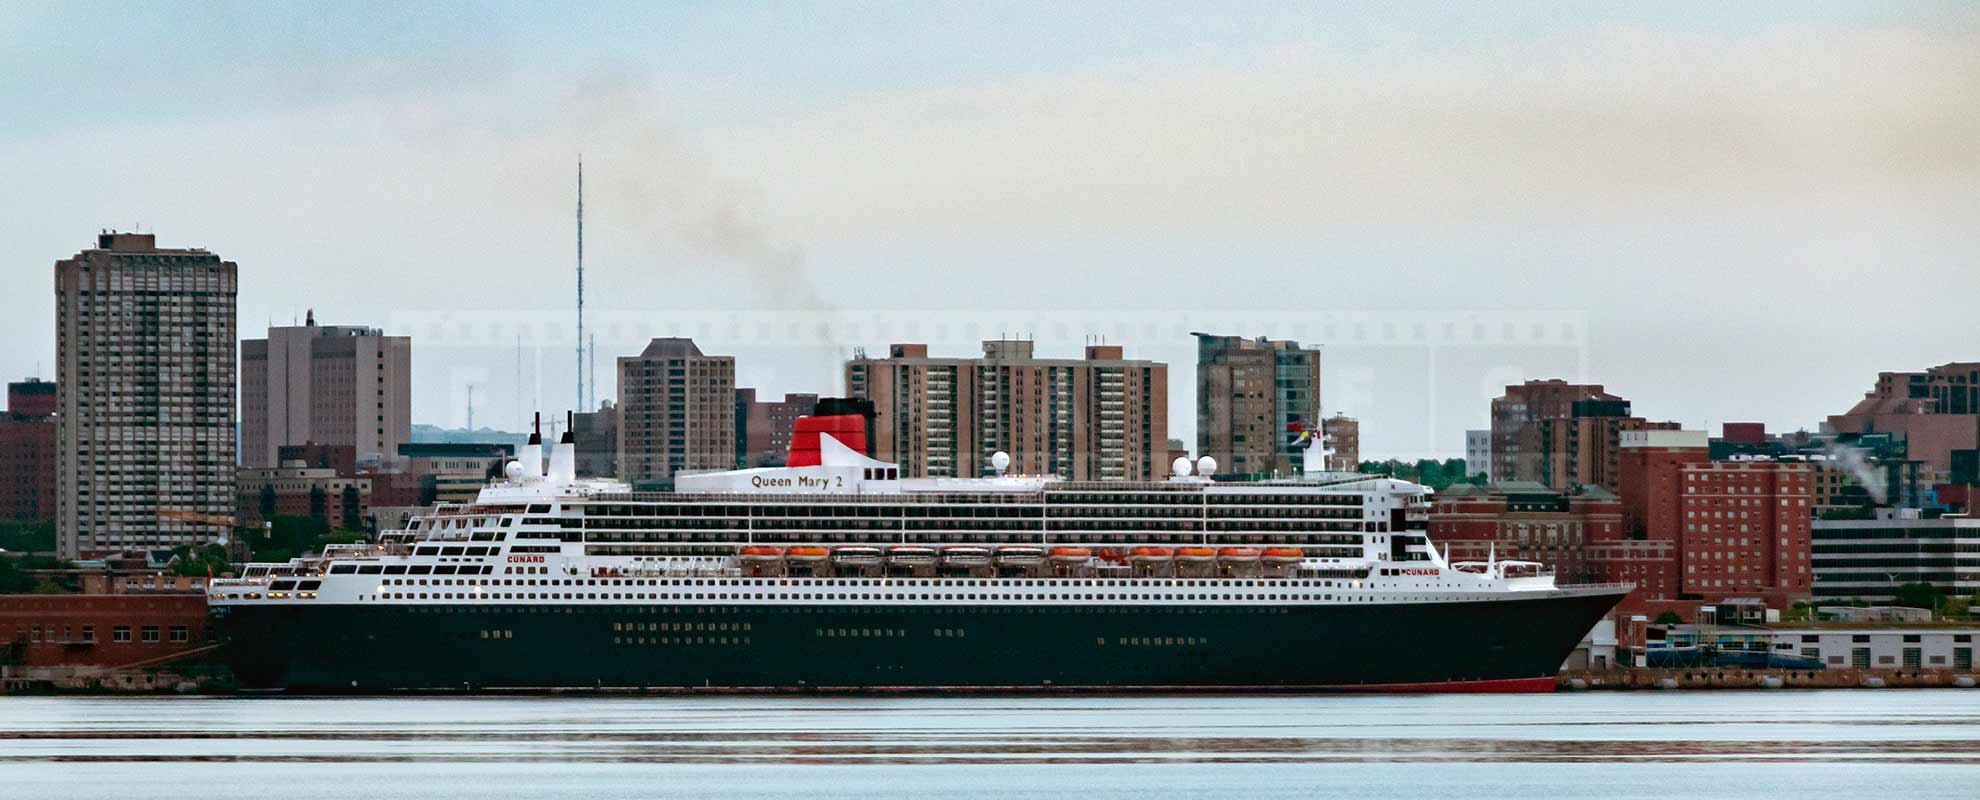 Cunard's Queen Mary 2 docked at pier 22 in Halifax, NS, Canada